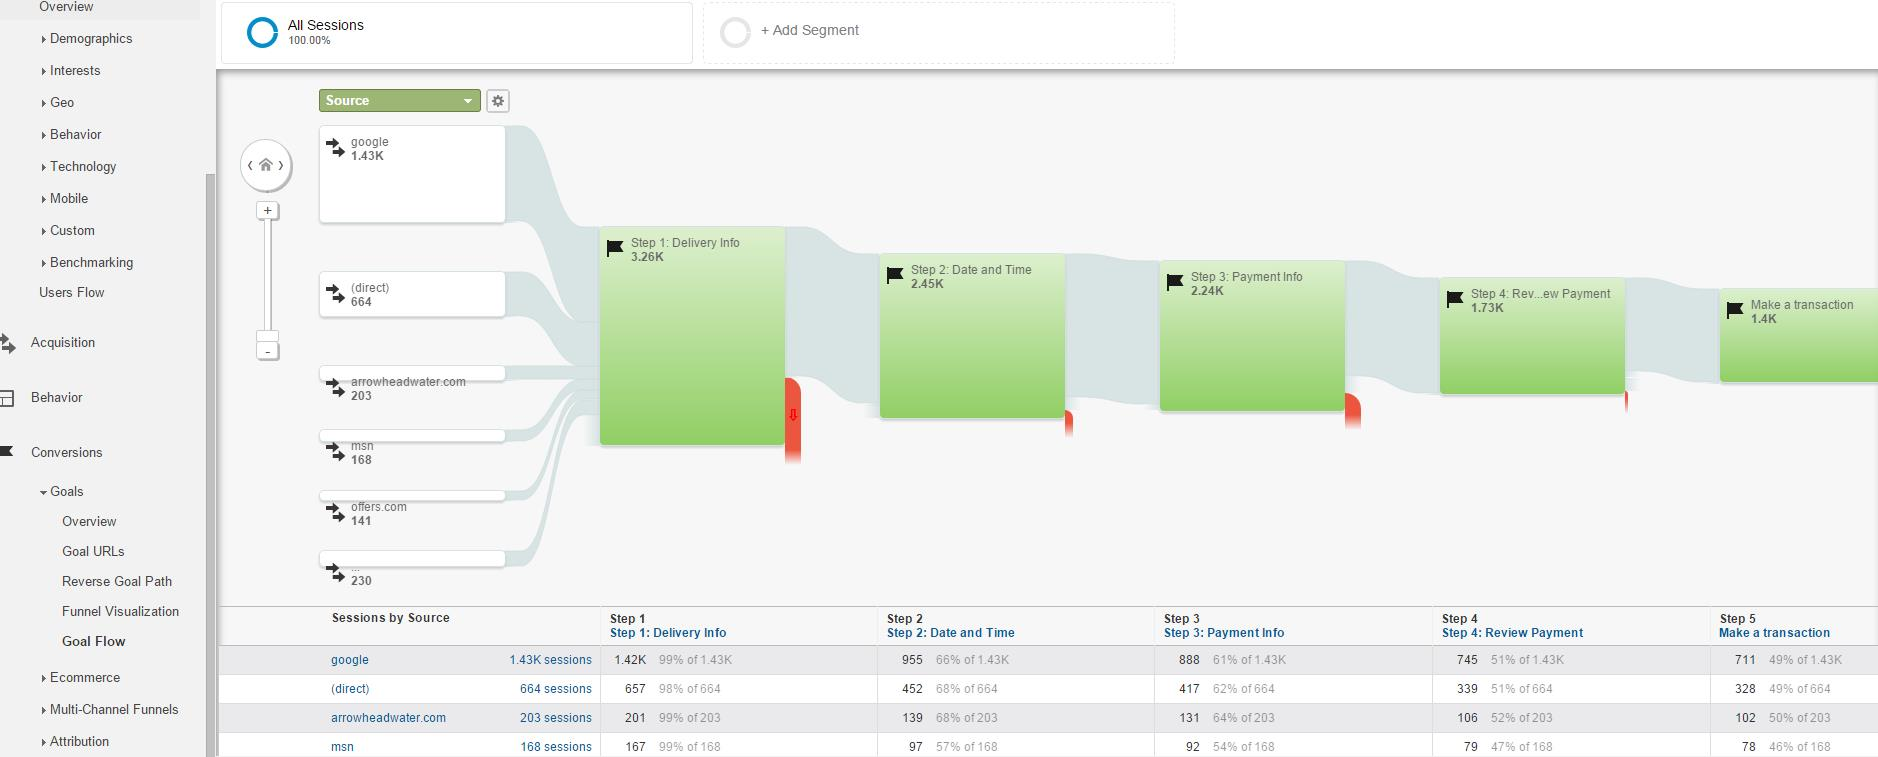 Setting up goal completion enables the view of users' flow through the conversion path and identifies weak points.